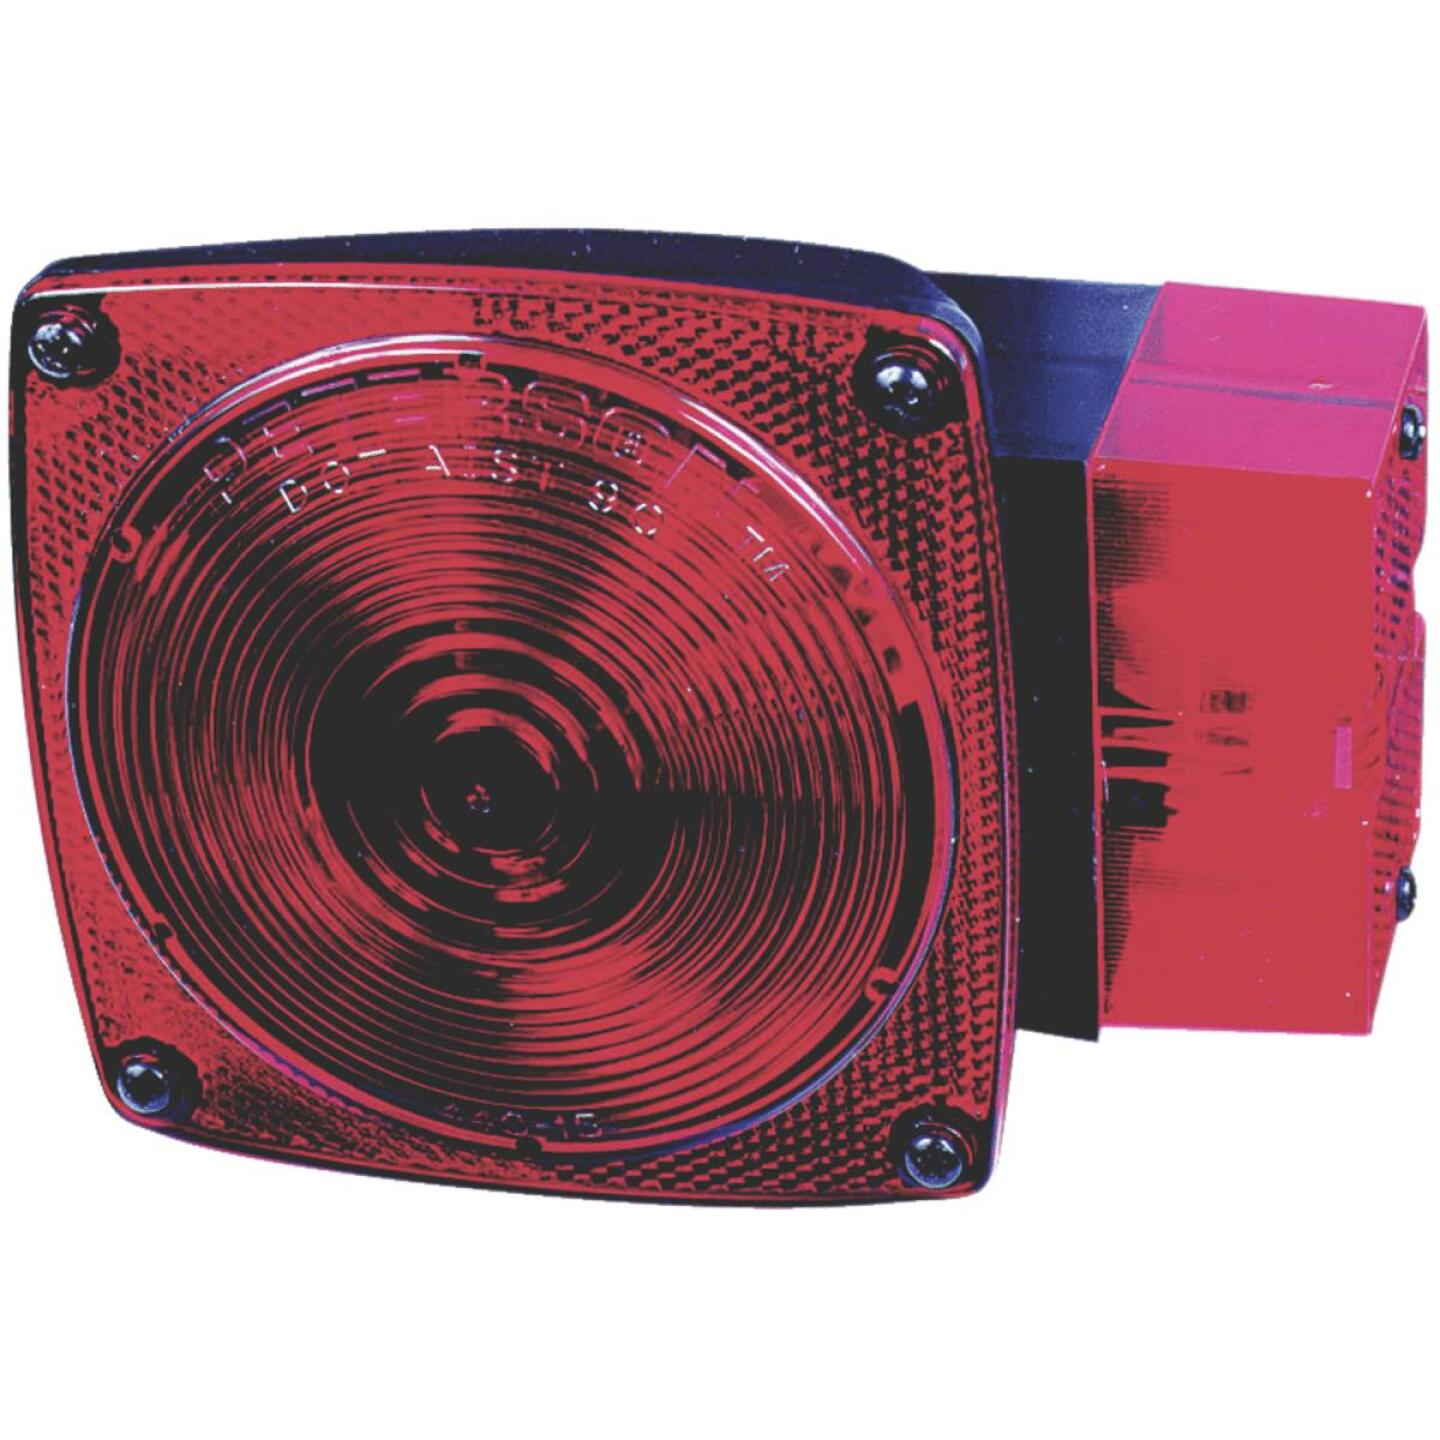 Peterson Square (w/Built-In License Plate Light) Red 5-3/4 In. Stop & Tail Light Image 1